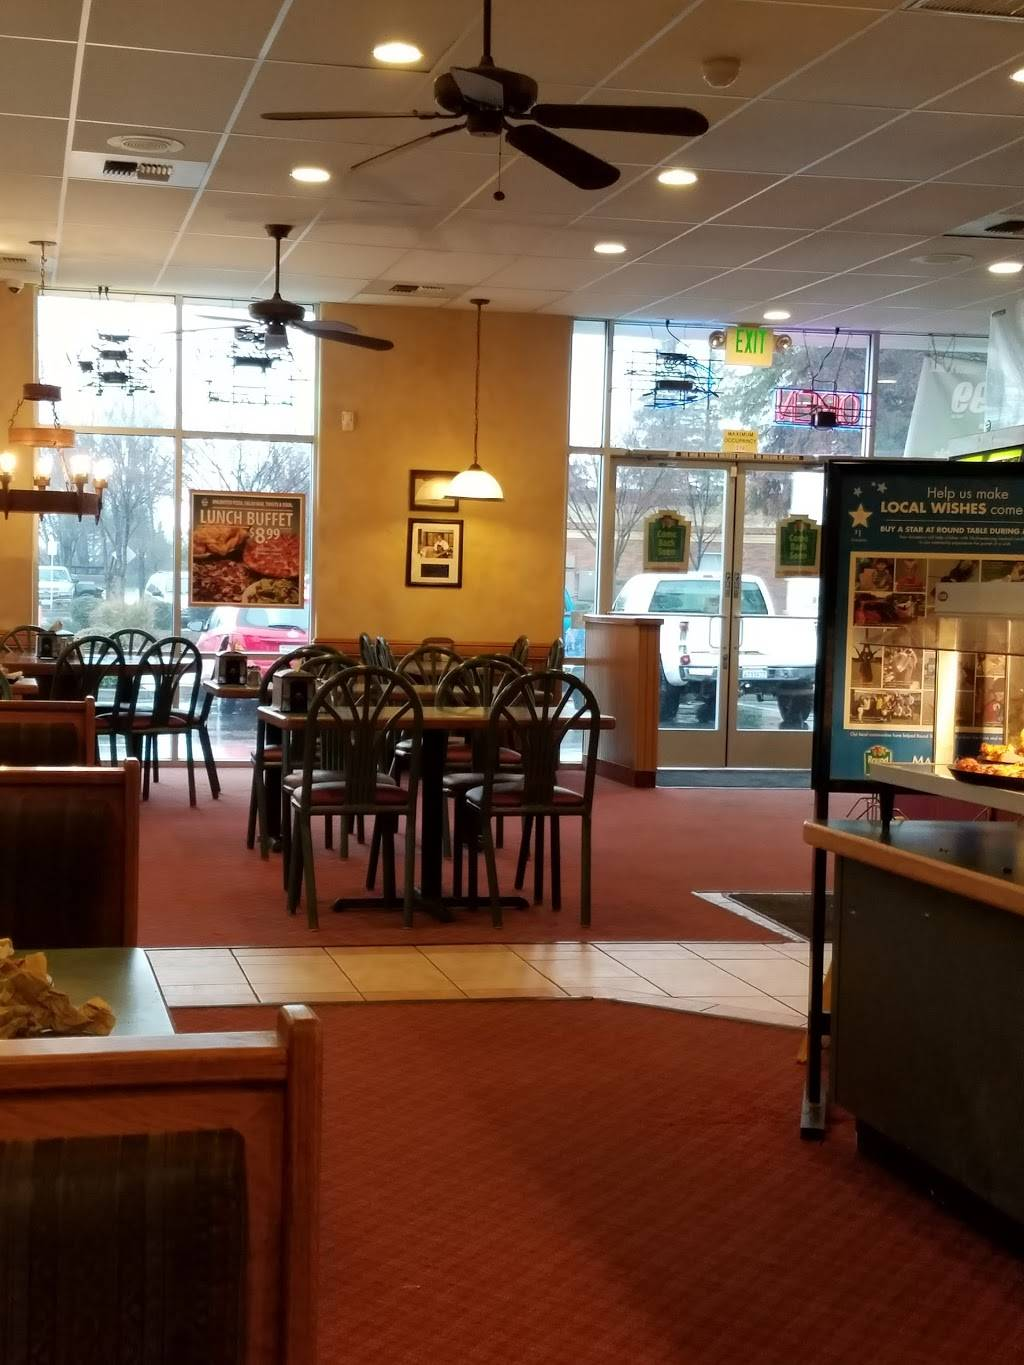 Round Table Marysville.Round Table Pizza Meal Delivery 202 9th St Marysville Ca 95901